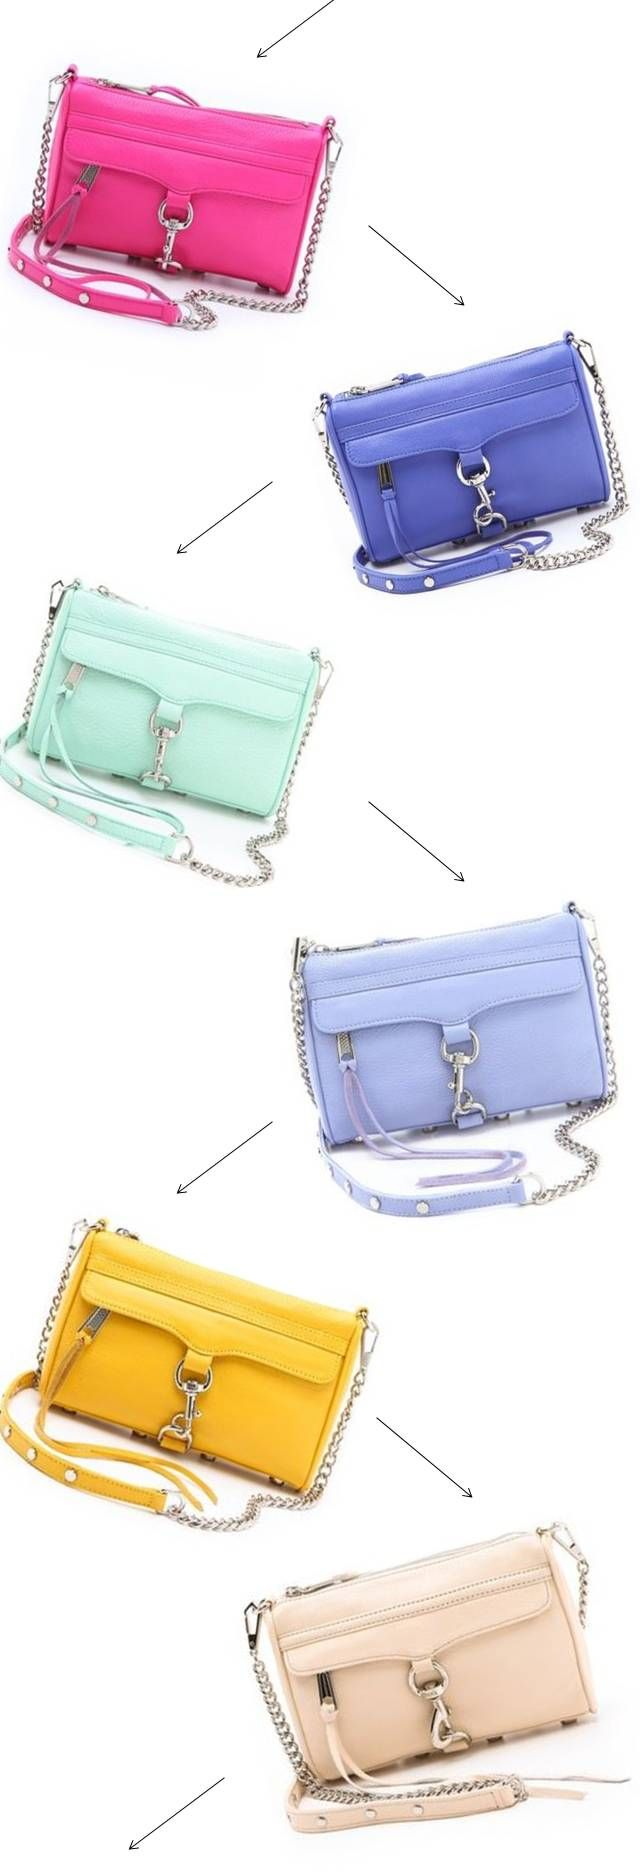 I'll take one in each color, please! http://rstyle.me/~hO3X